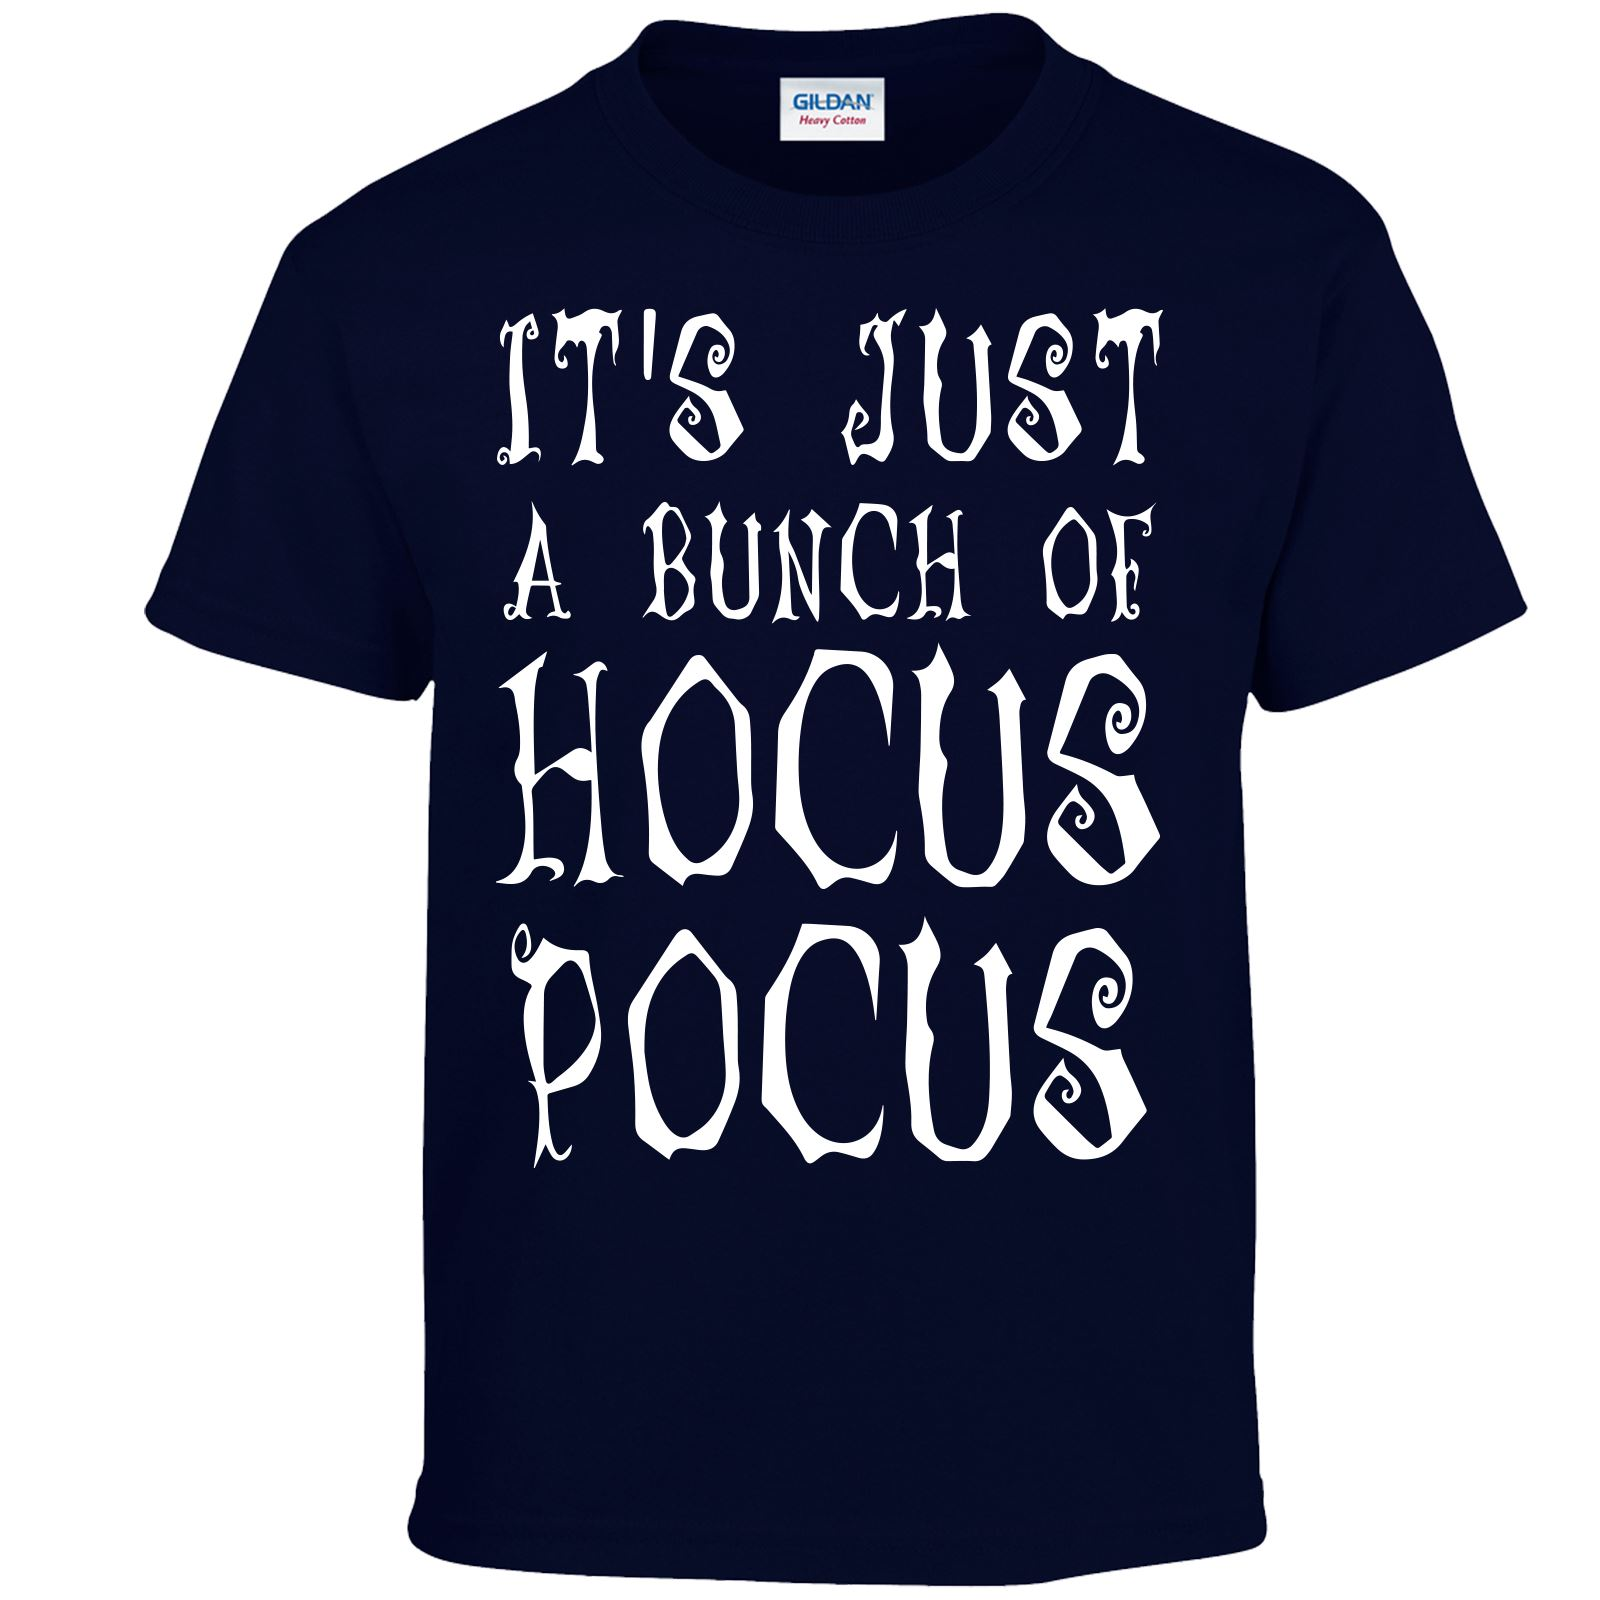 Hocus Pocus Bunch Kids Adult New Costume Top Inspired Present Unisex Tshirt